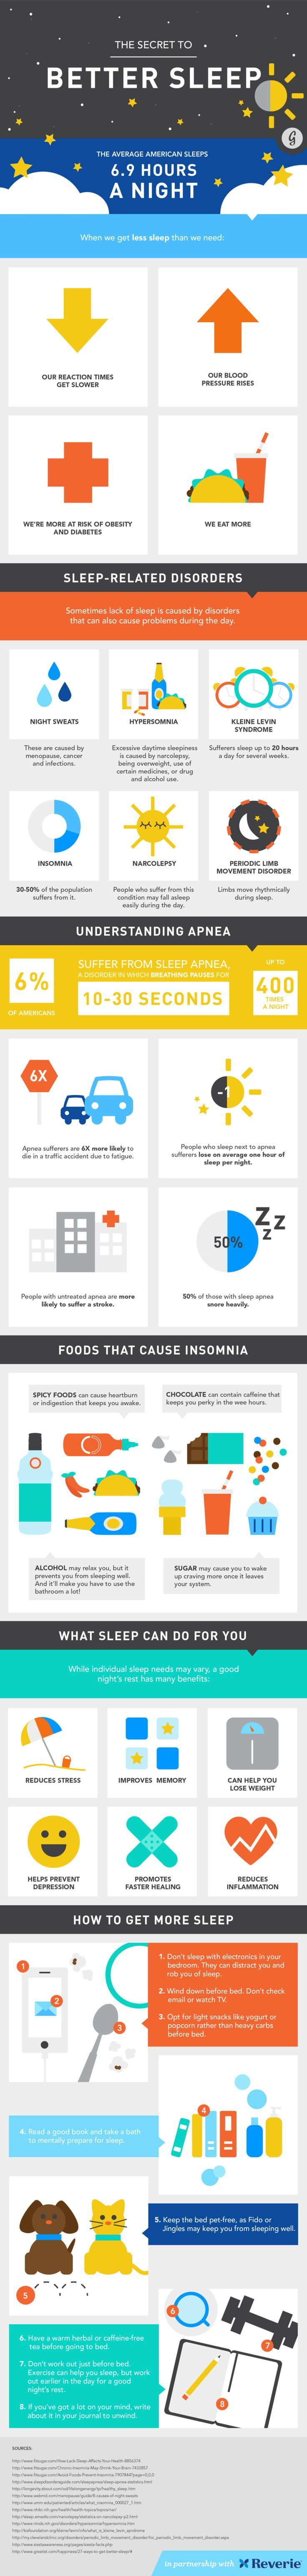 Everything You Need to Know to Sleep Better, Tonight #sleep #rest #relax http://greatist.com/happiness/secret-better-sleep-infographic